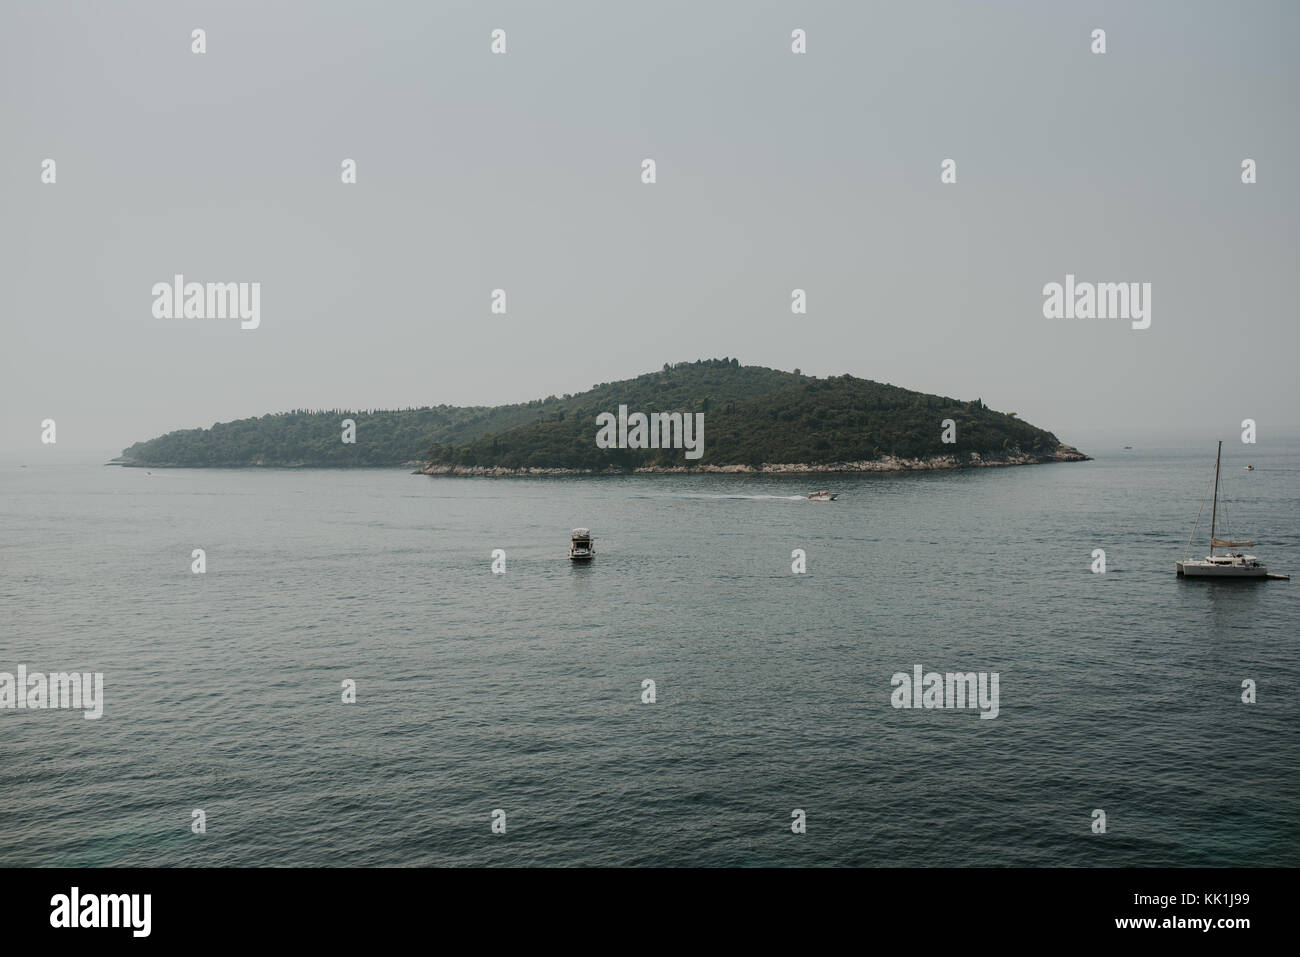 Island of Lokrum in front of Dubrovnik, Croatia - Stock Image